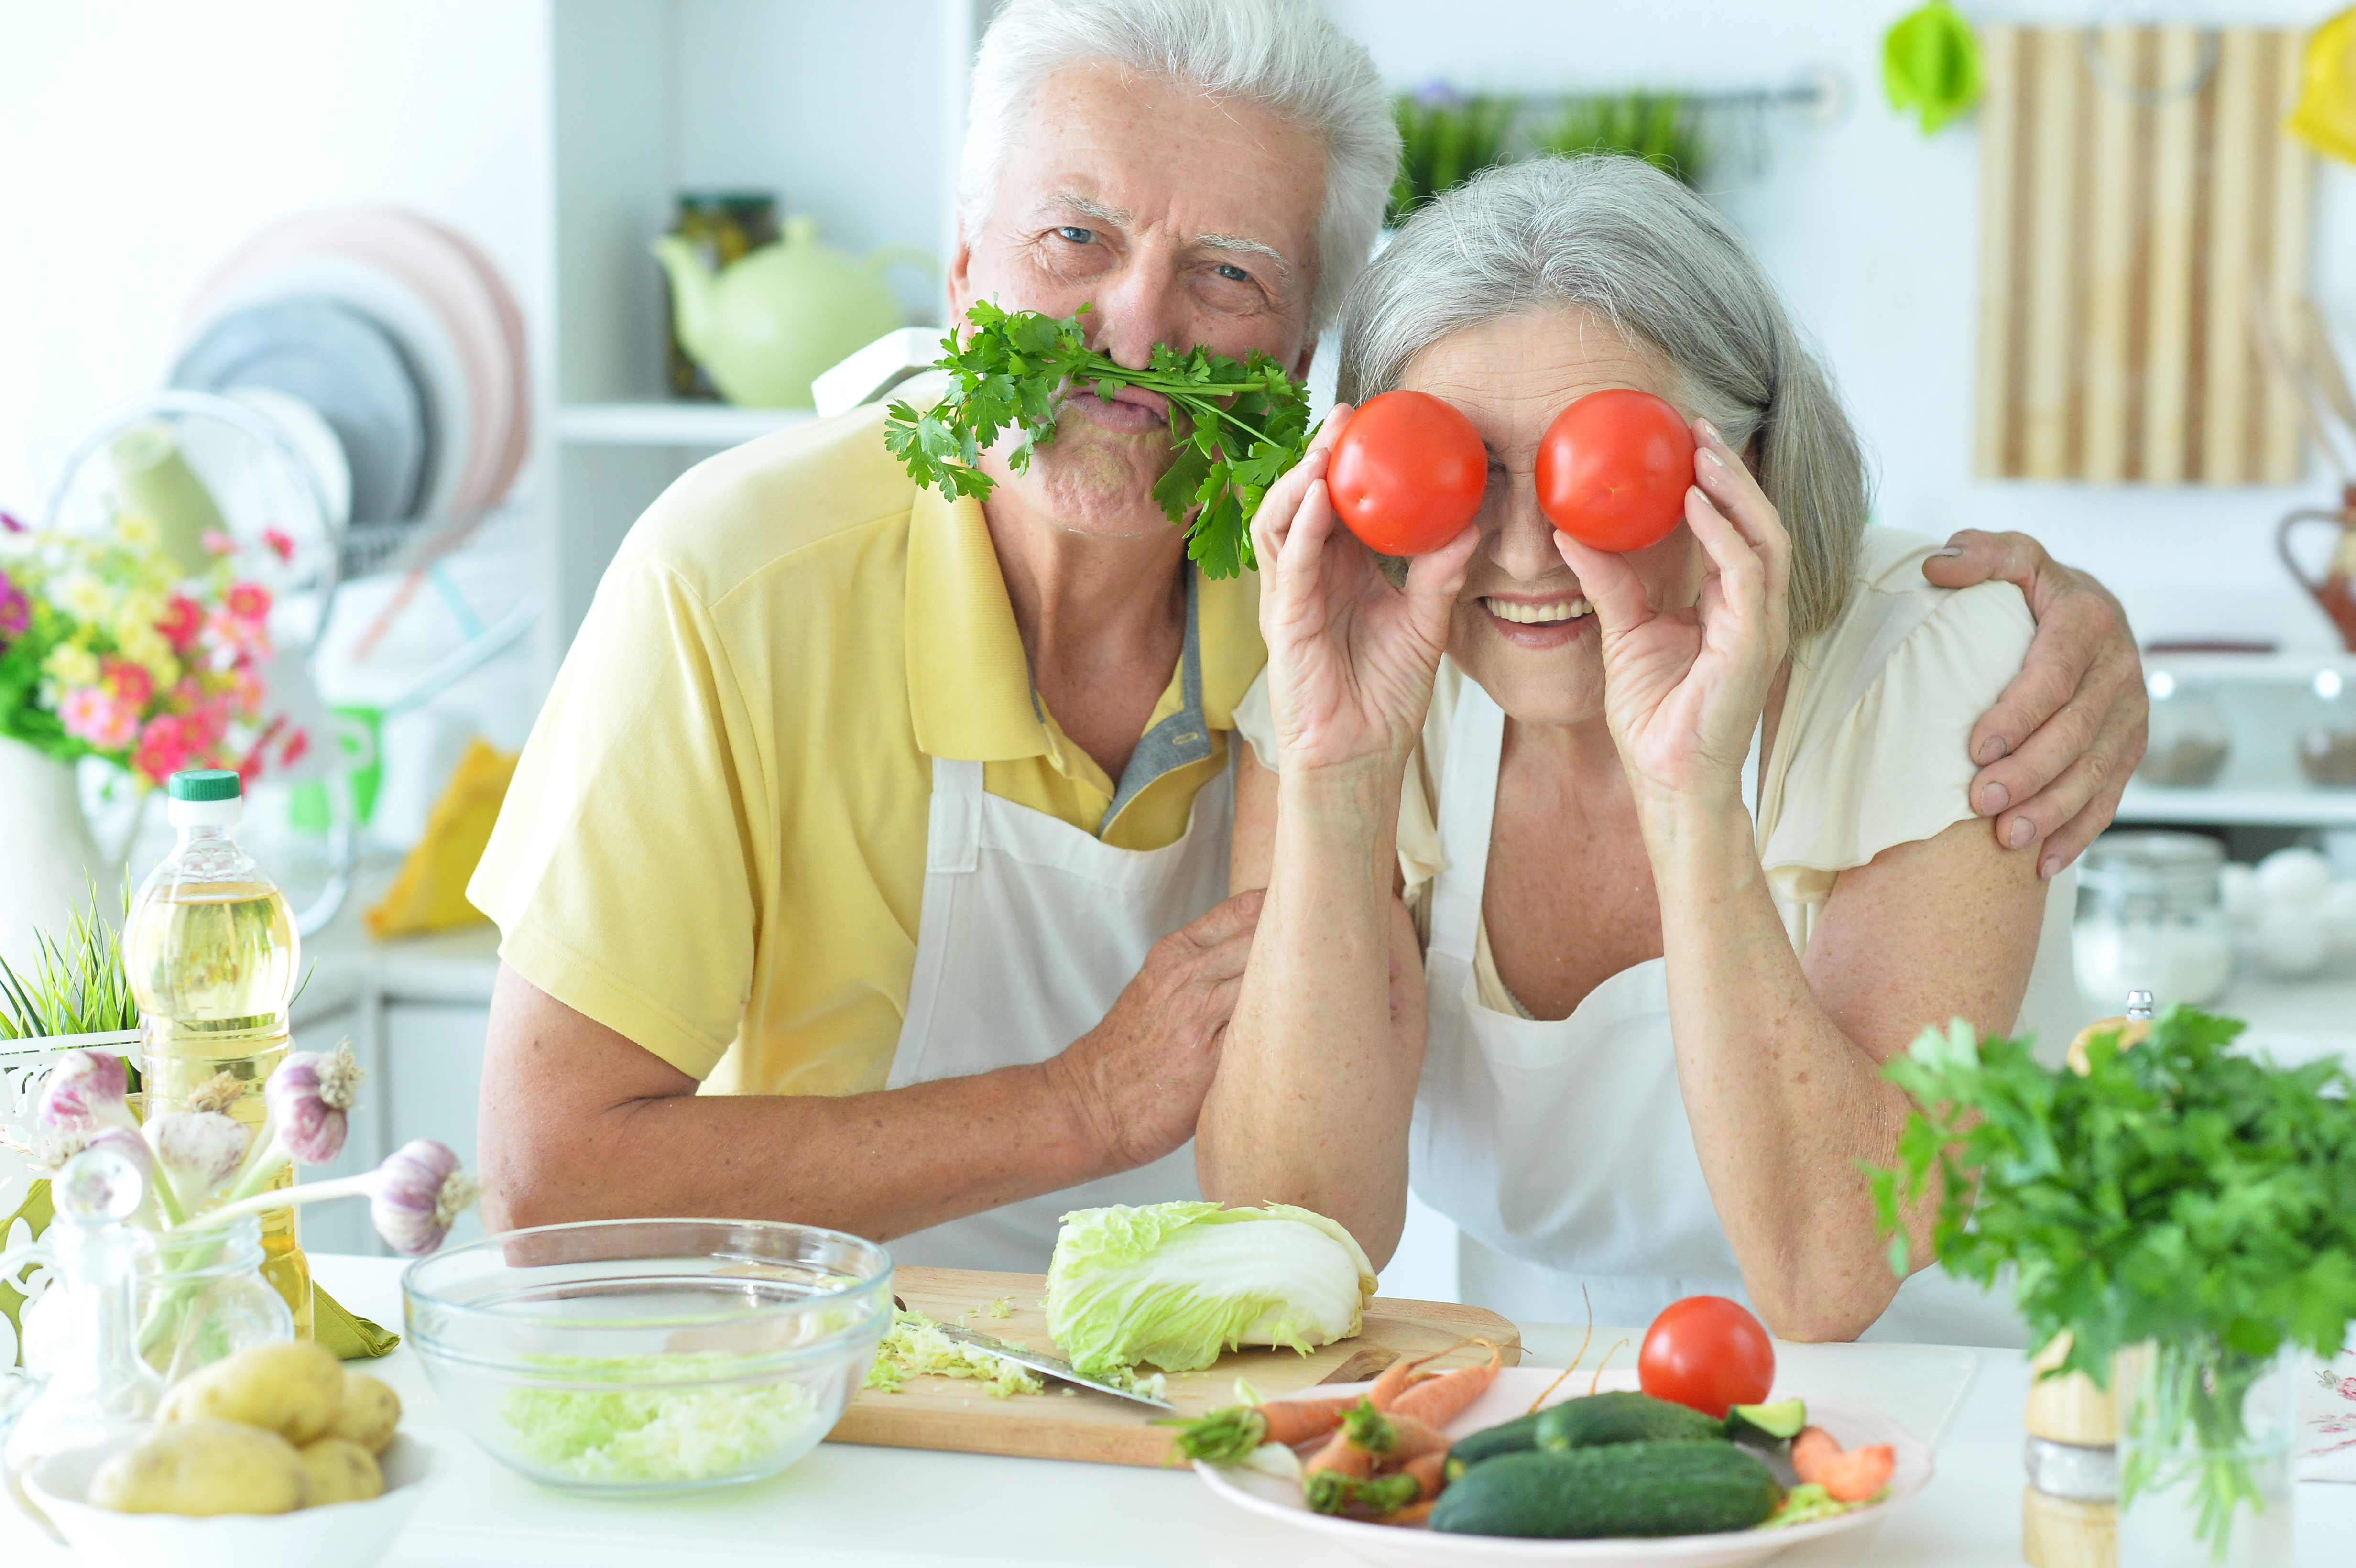 What Common Household Ingredient Can Protect Against Alzheimer's?